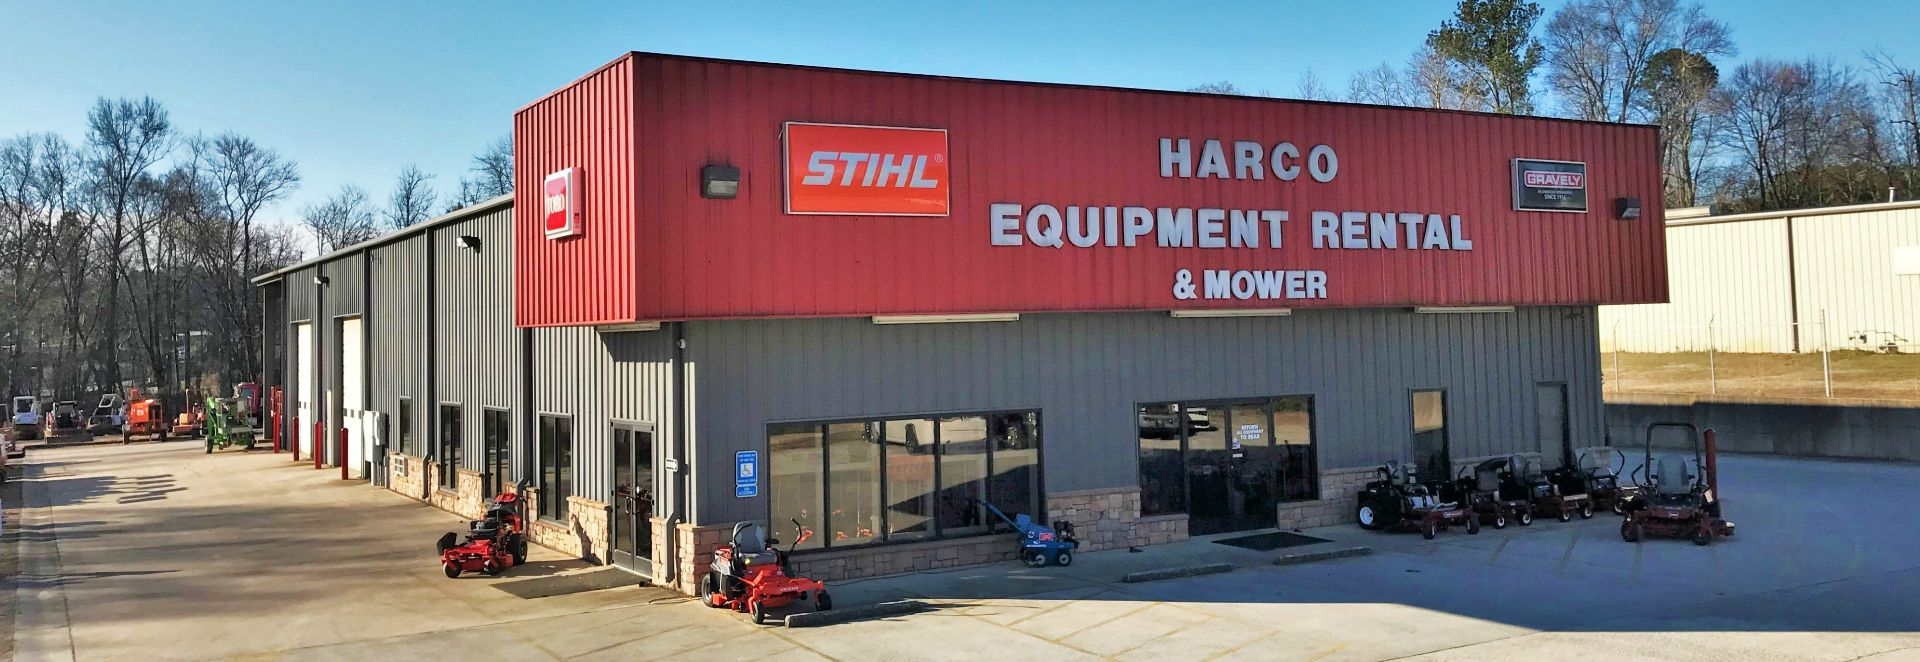 Harco Equipment Rental and Outdoor Power